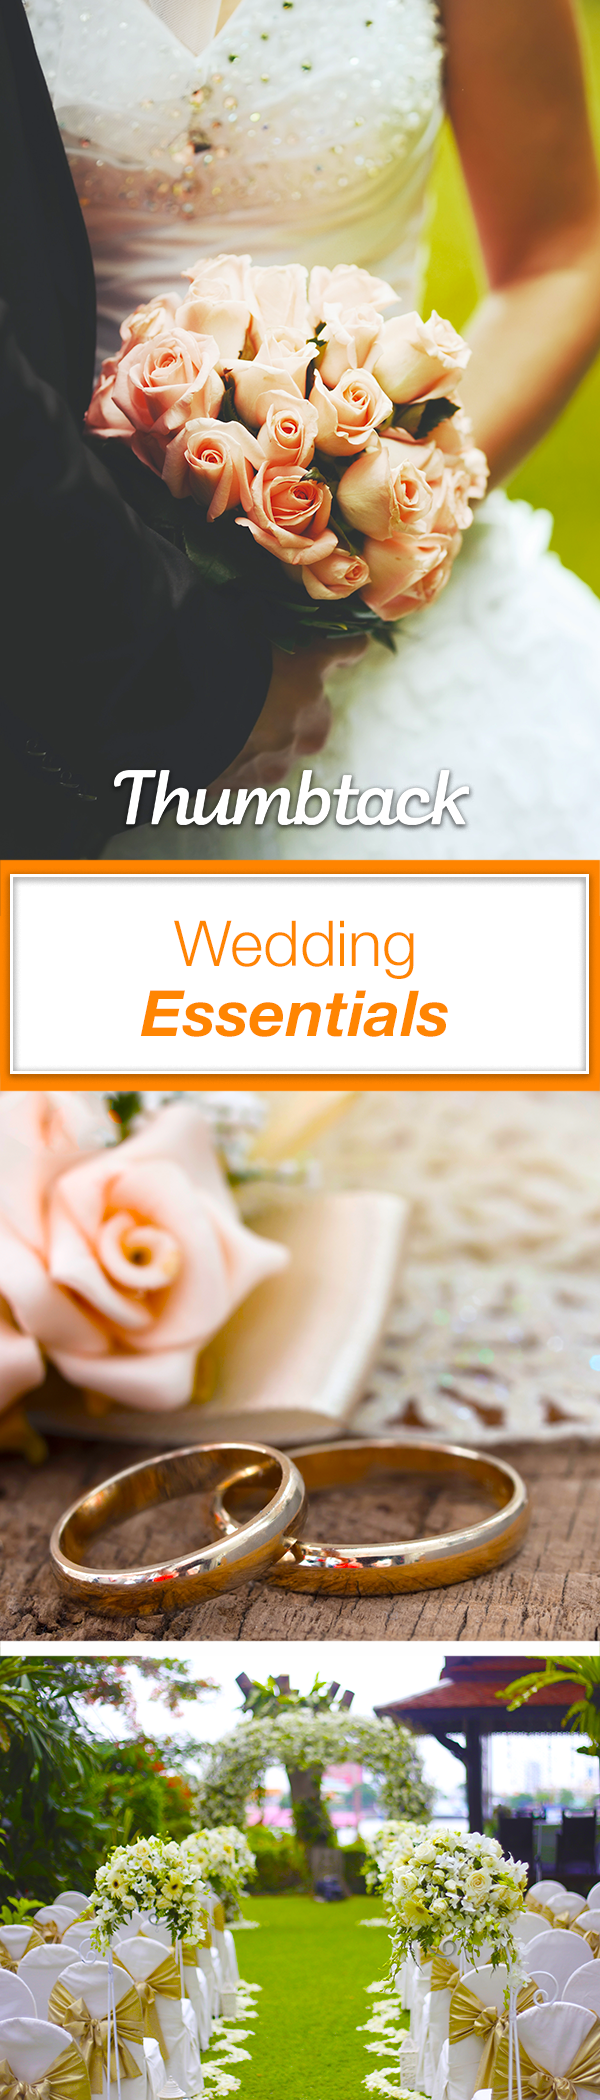 Thumbtack Accomplish Your Personal Projects Wedding Essentials Plan Your Wedding Wedding